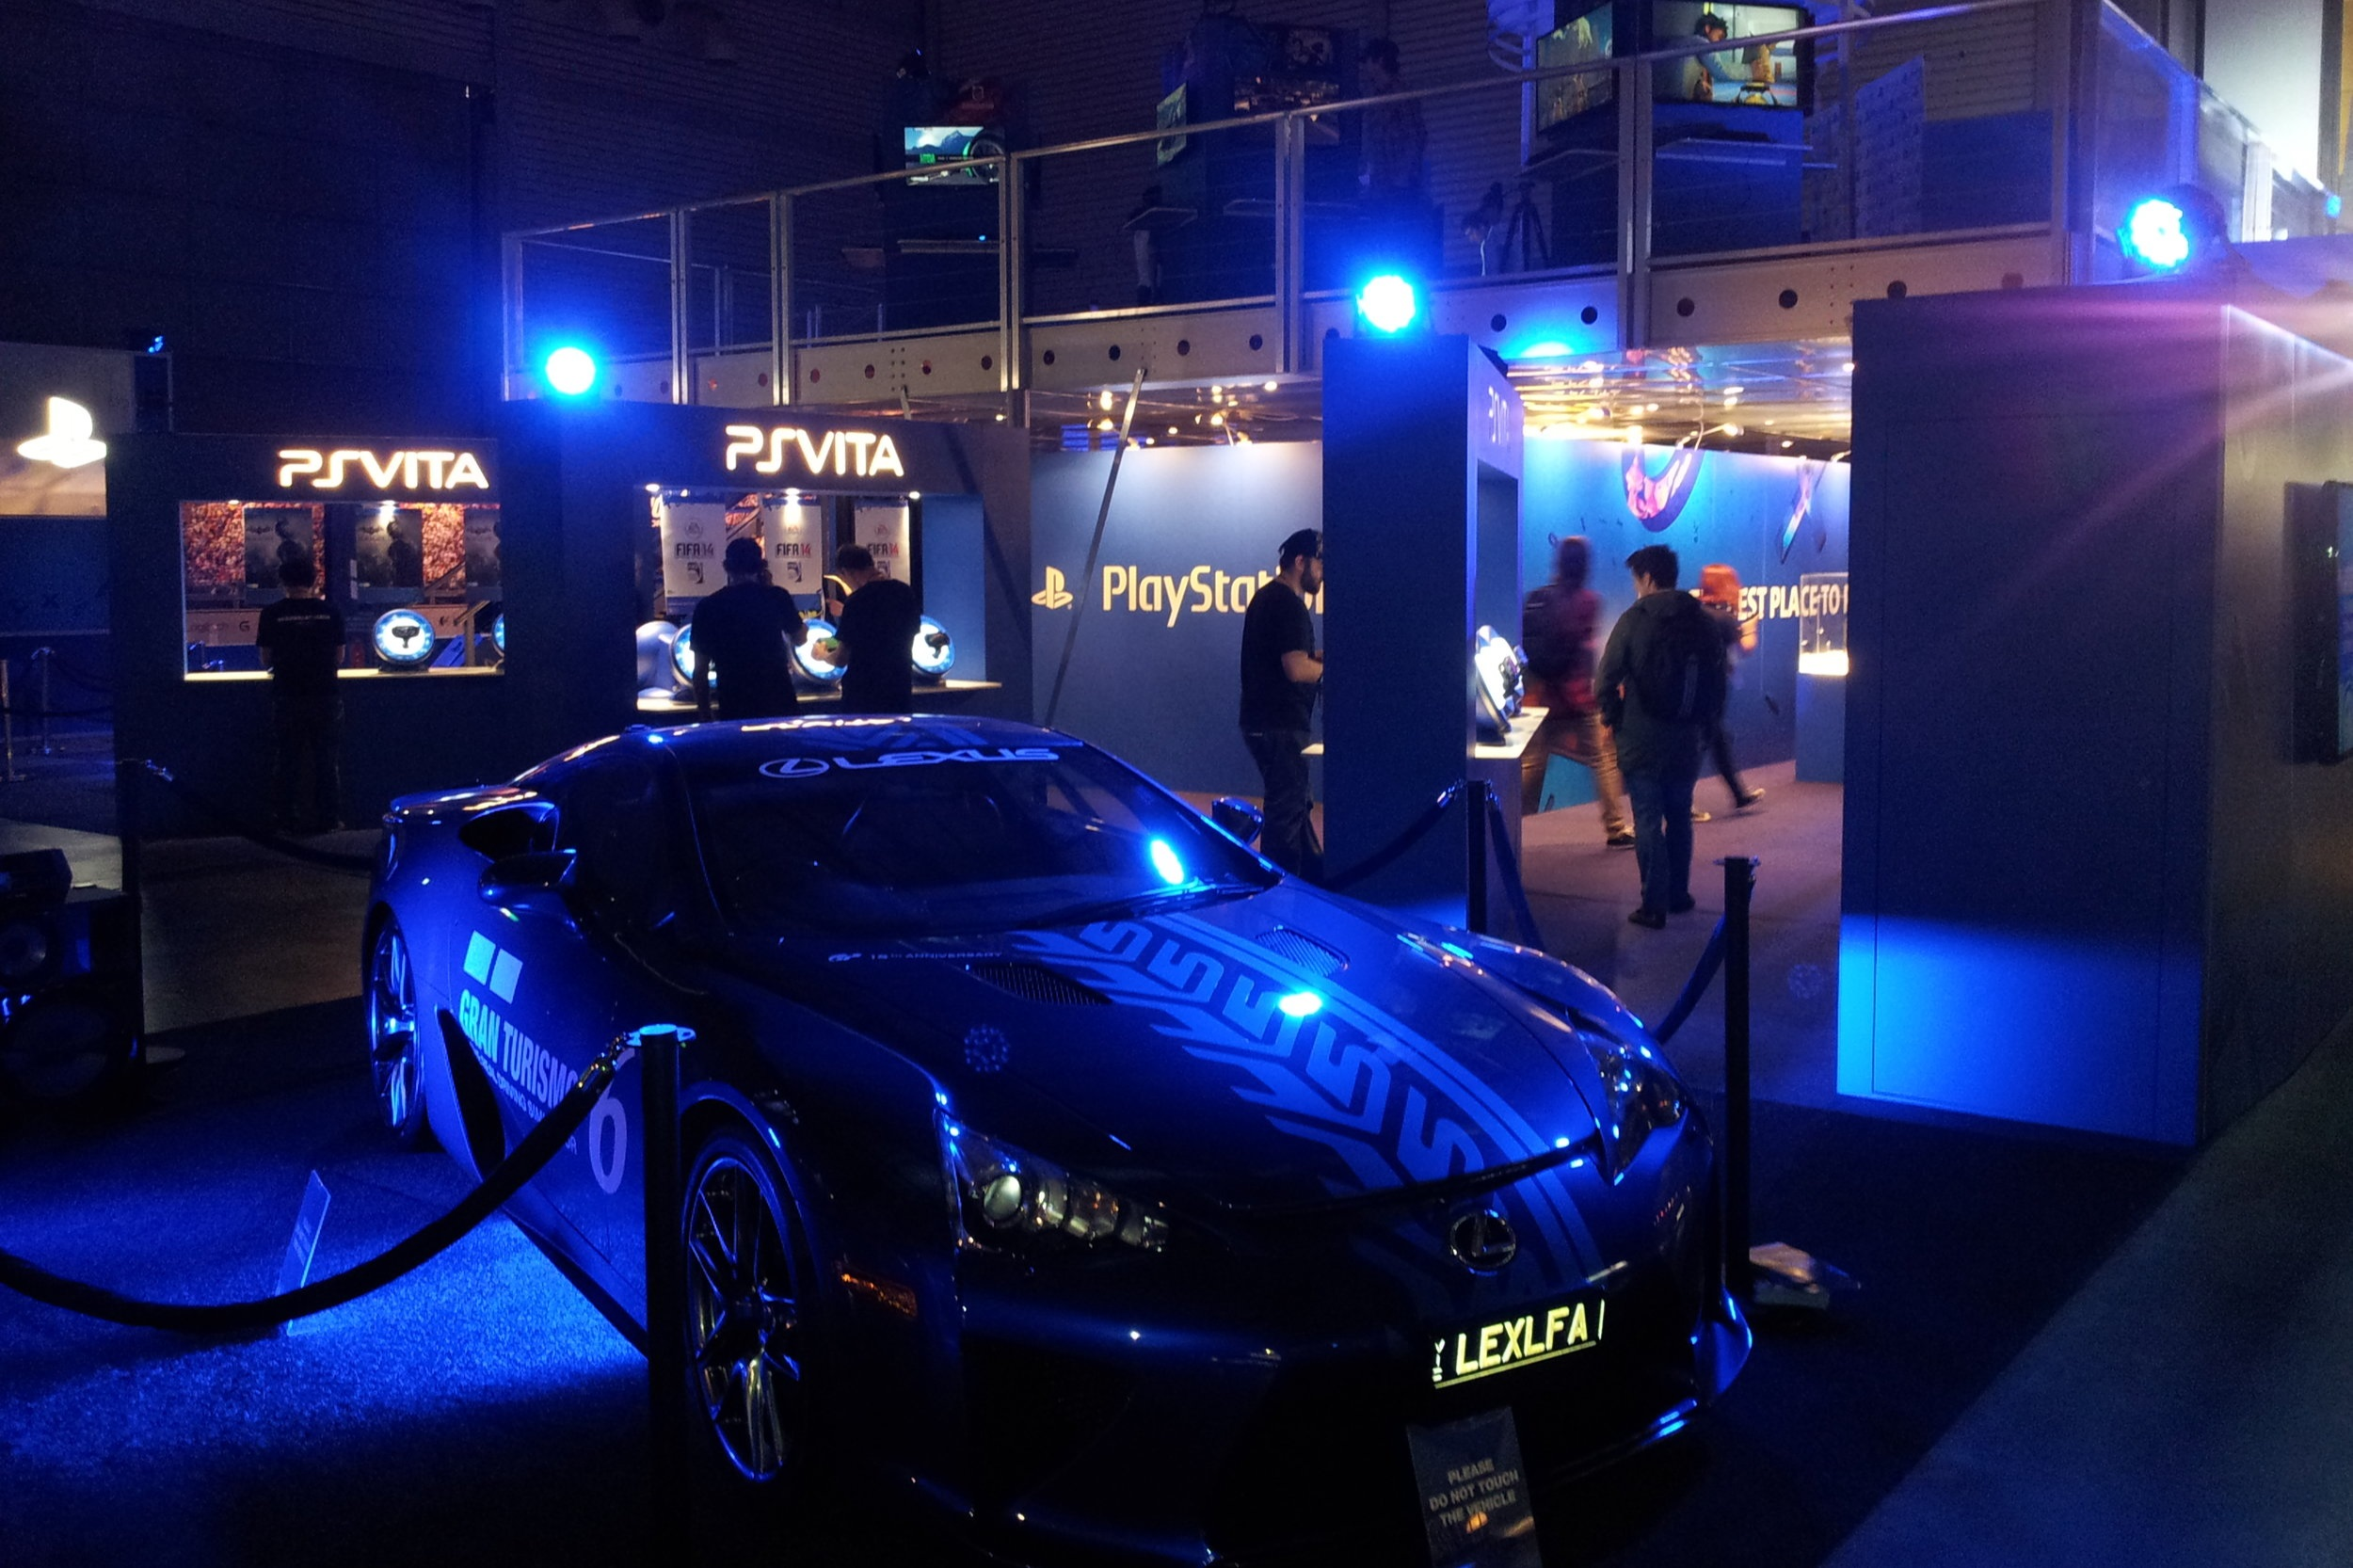 Sony PS4 Launch at EB Games